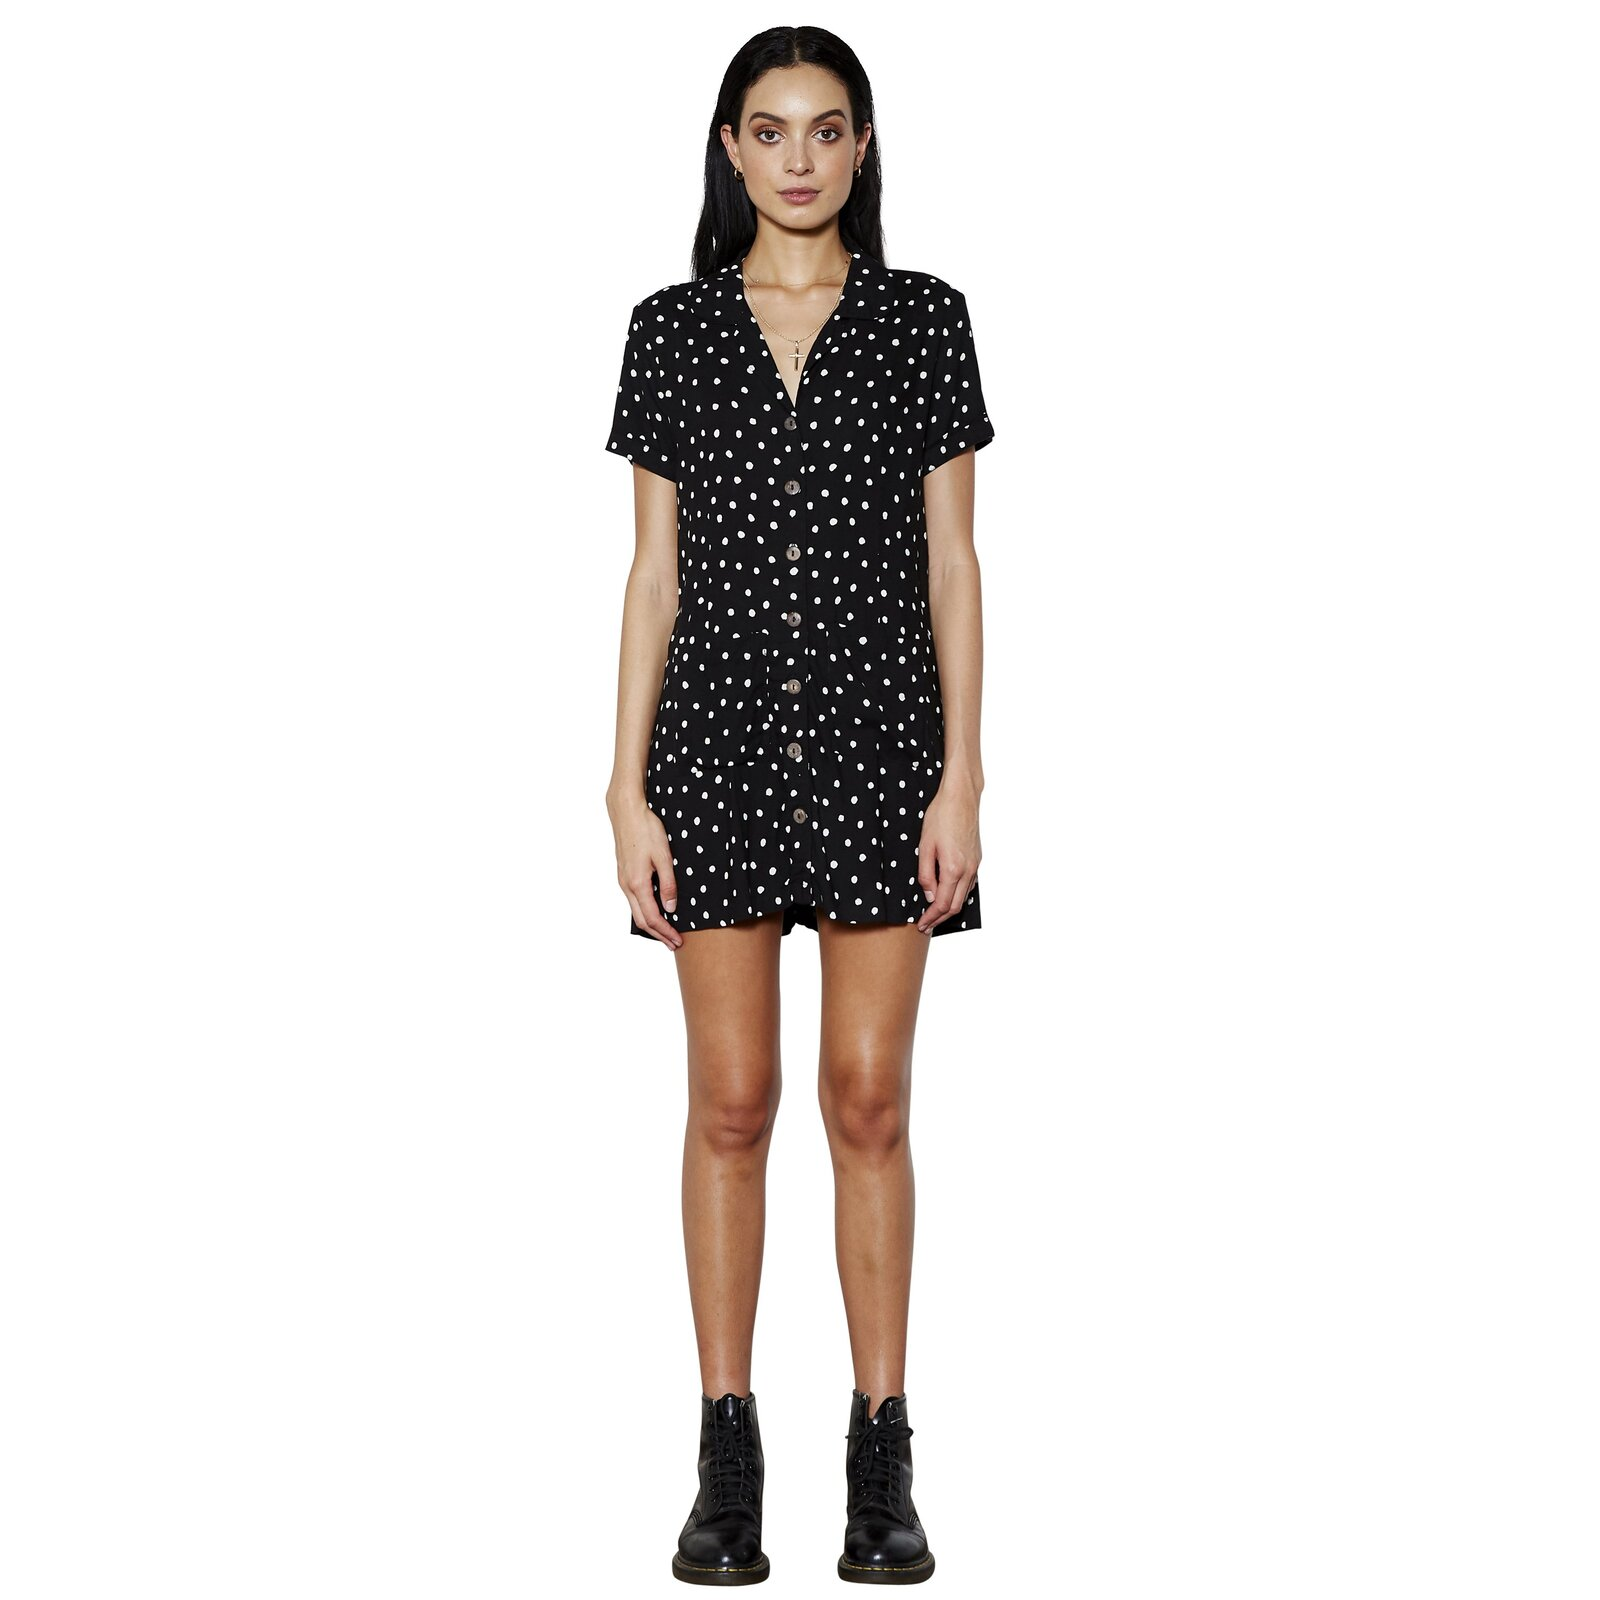 THE PEOPLE VS HACIENDA DRESS ON THE DOT